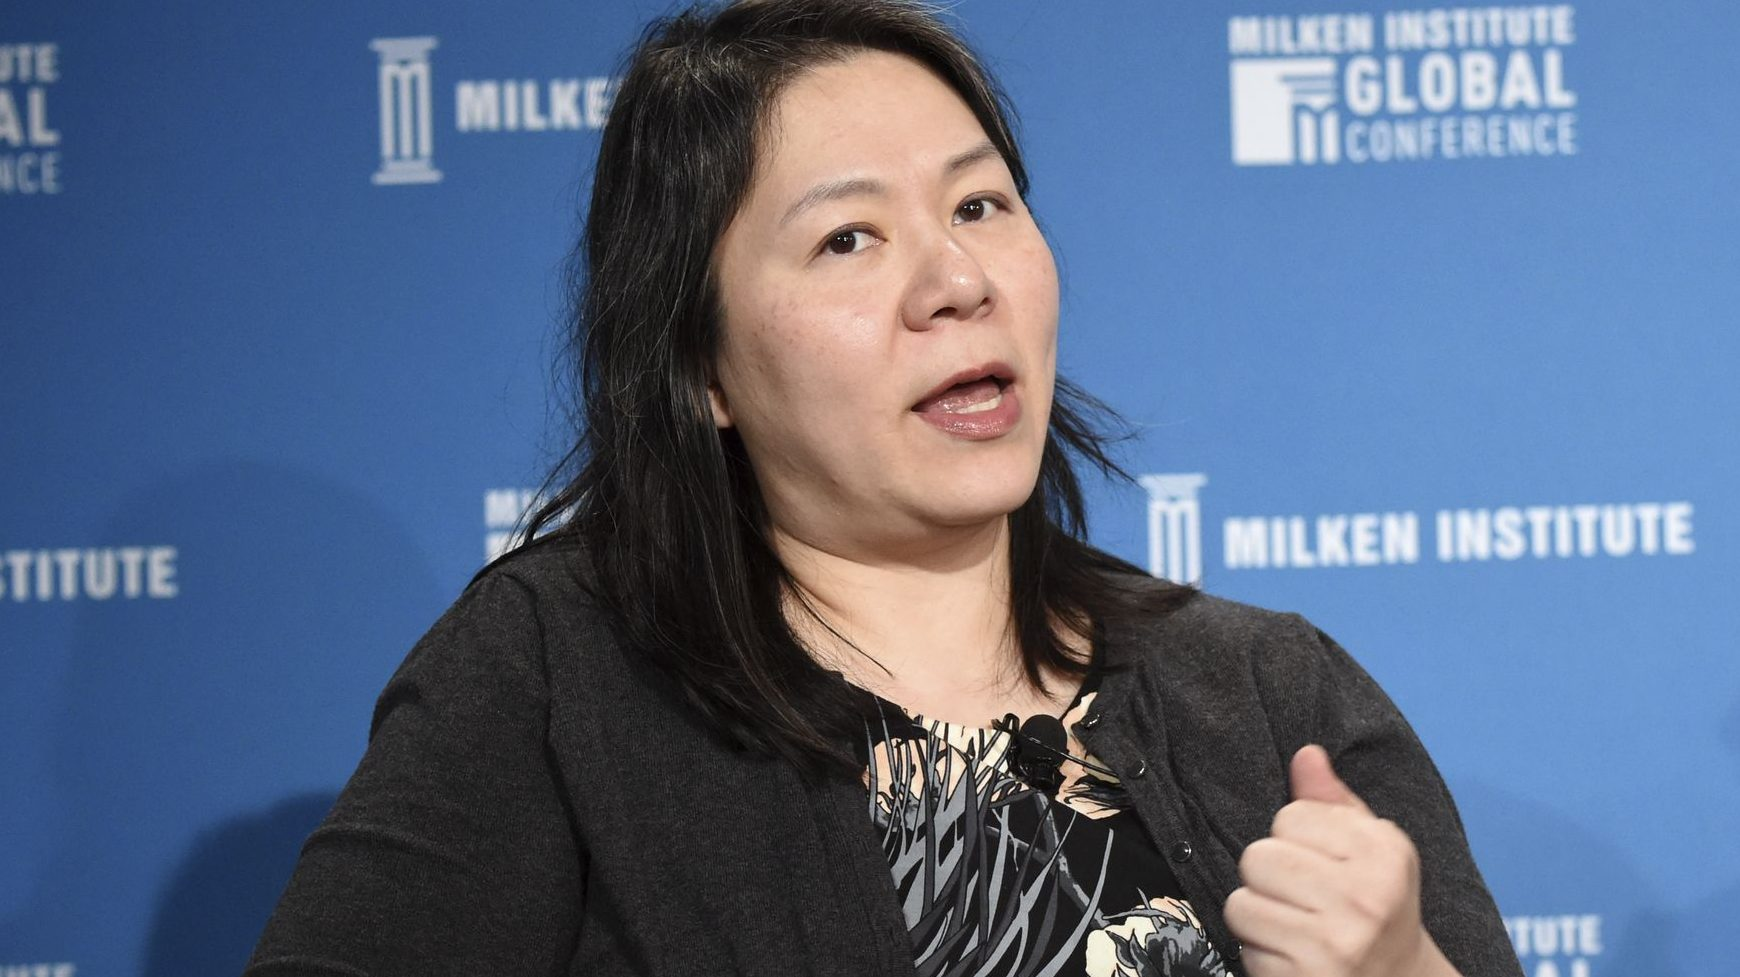 Bo Young Lee, Uber Chief Diversity Officer